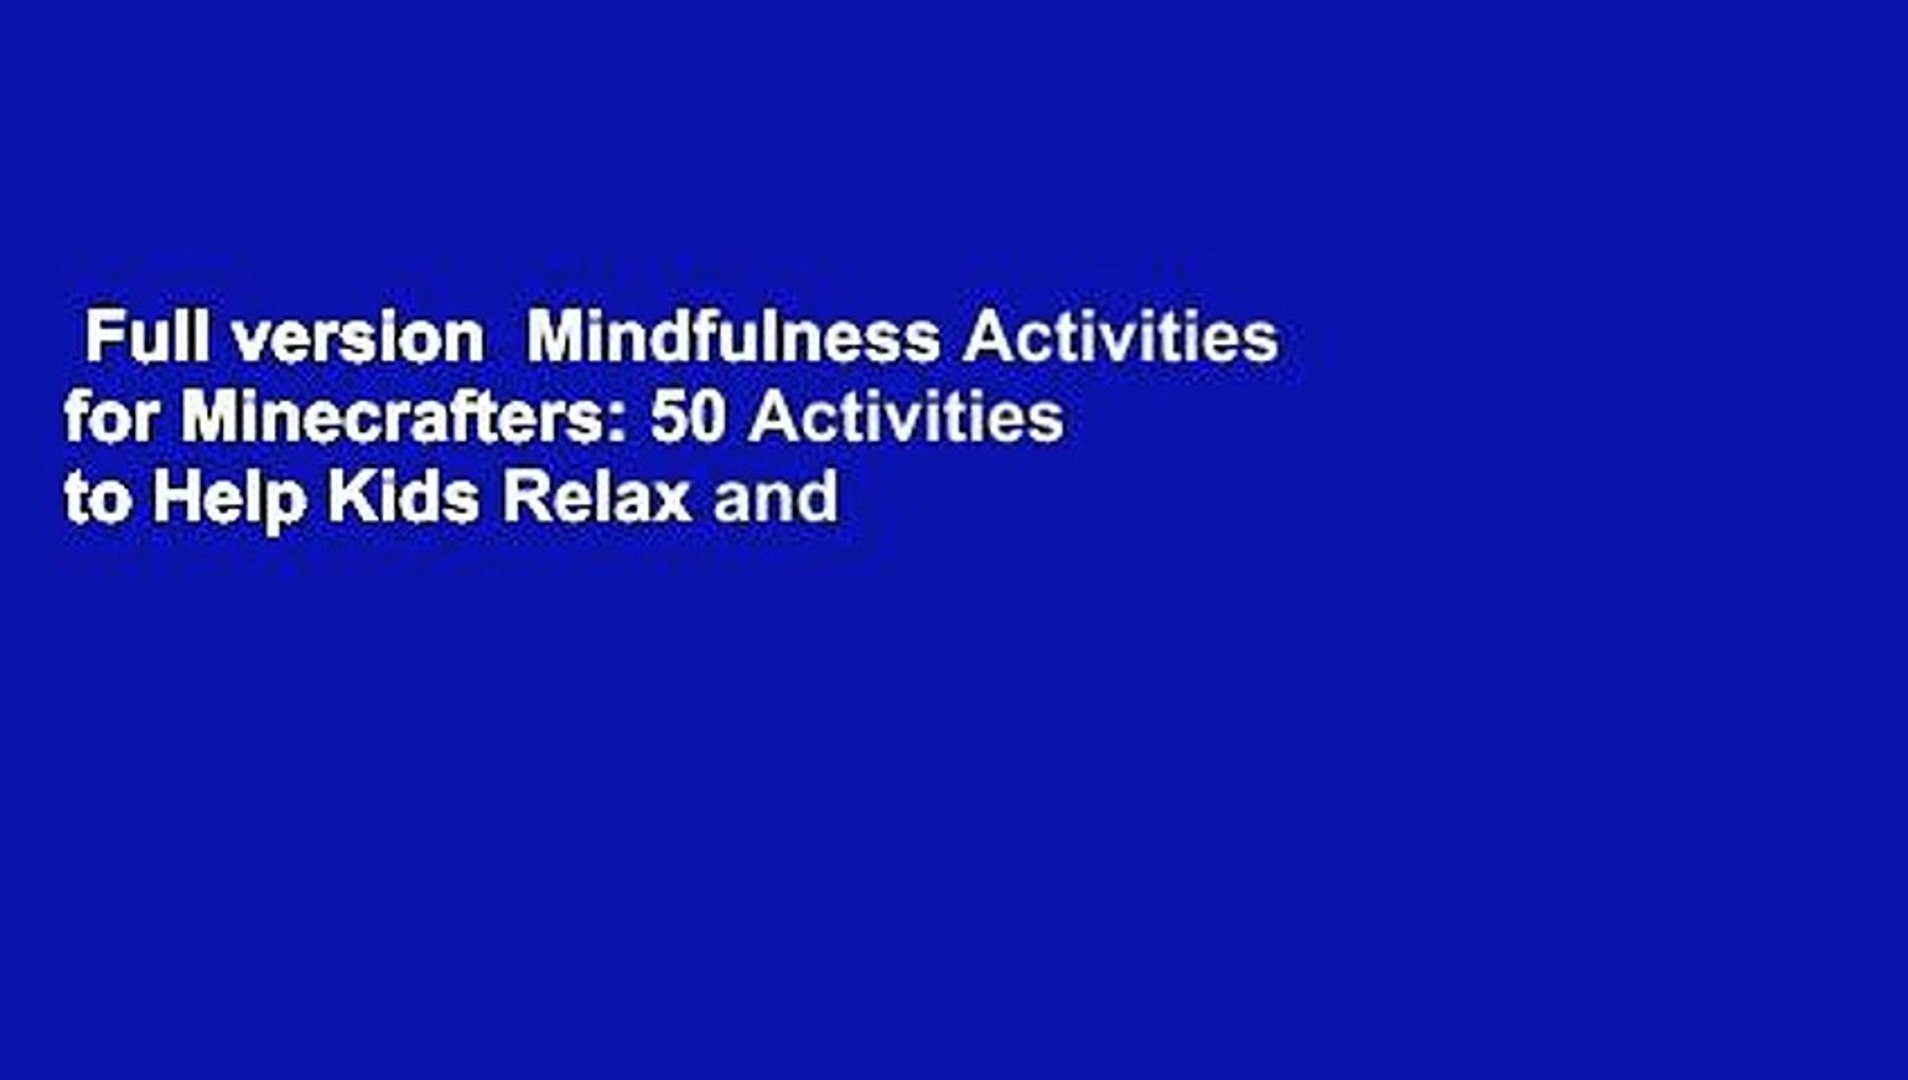 Full version  Mindfulness Activities for Minecrafters: 50 Activities to Help Kids Relax and